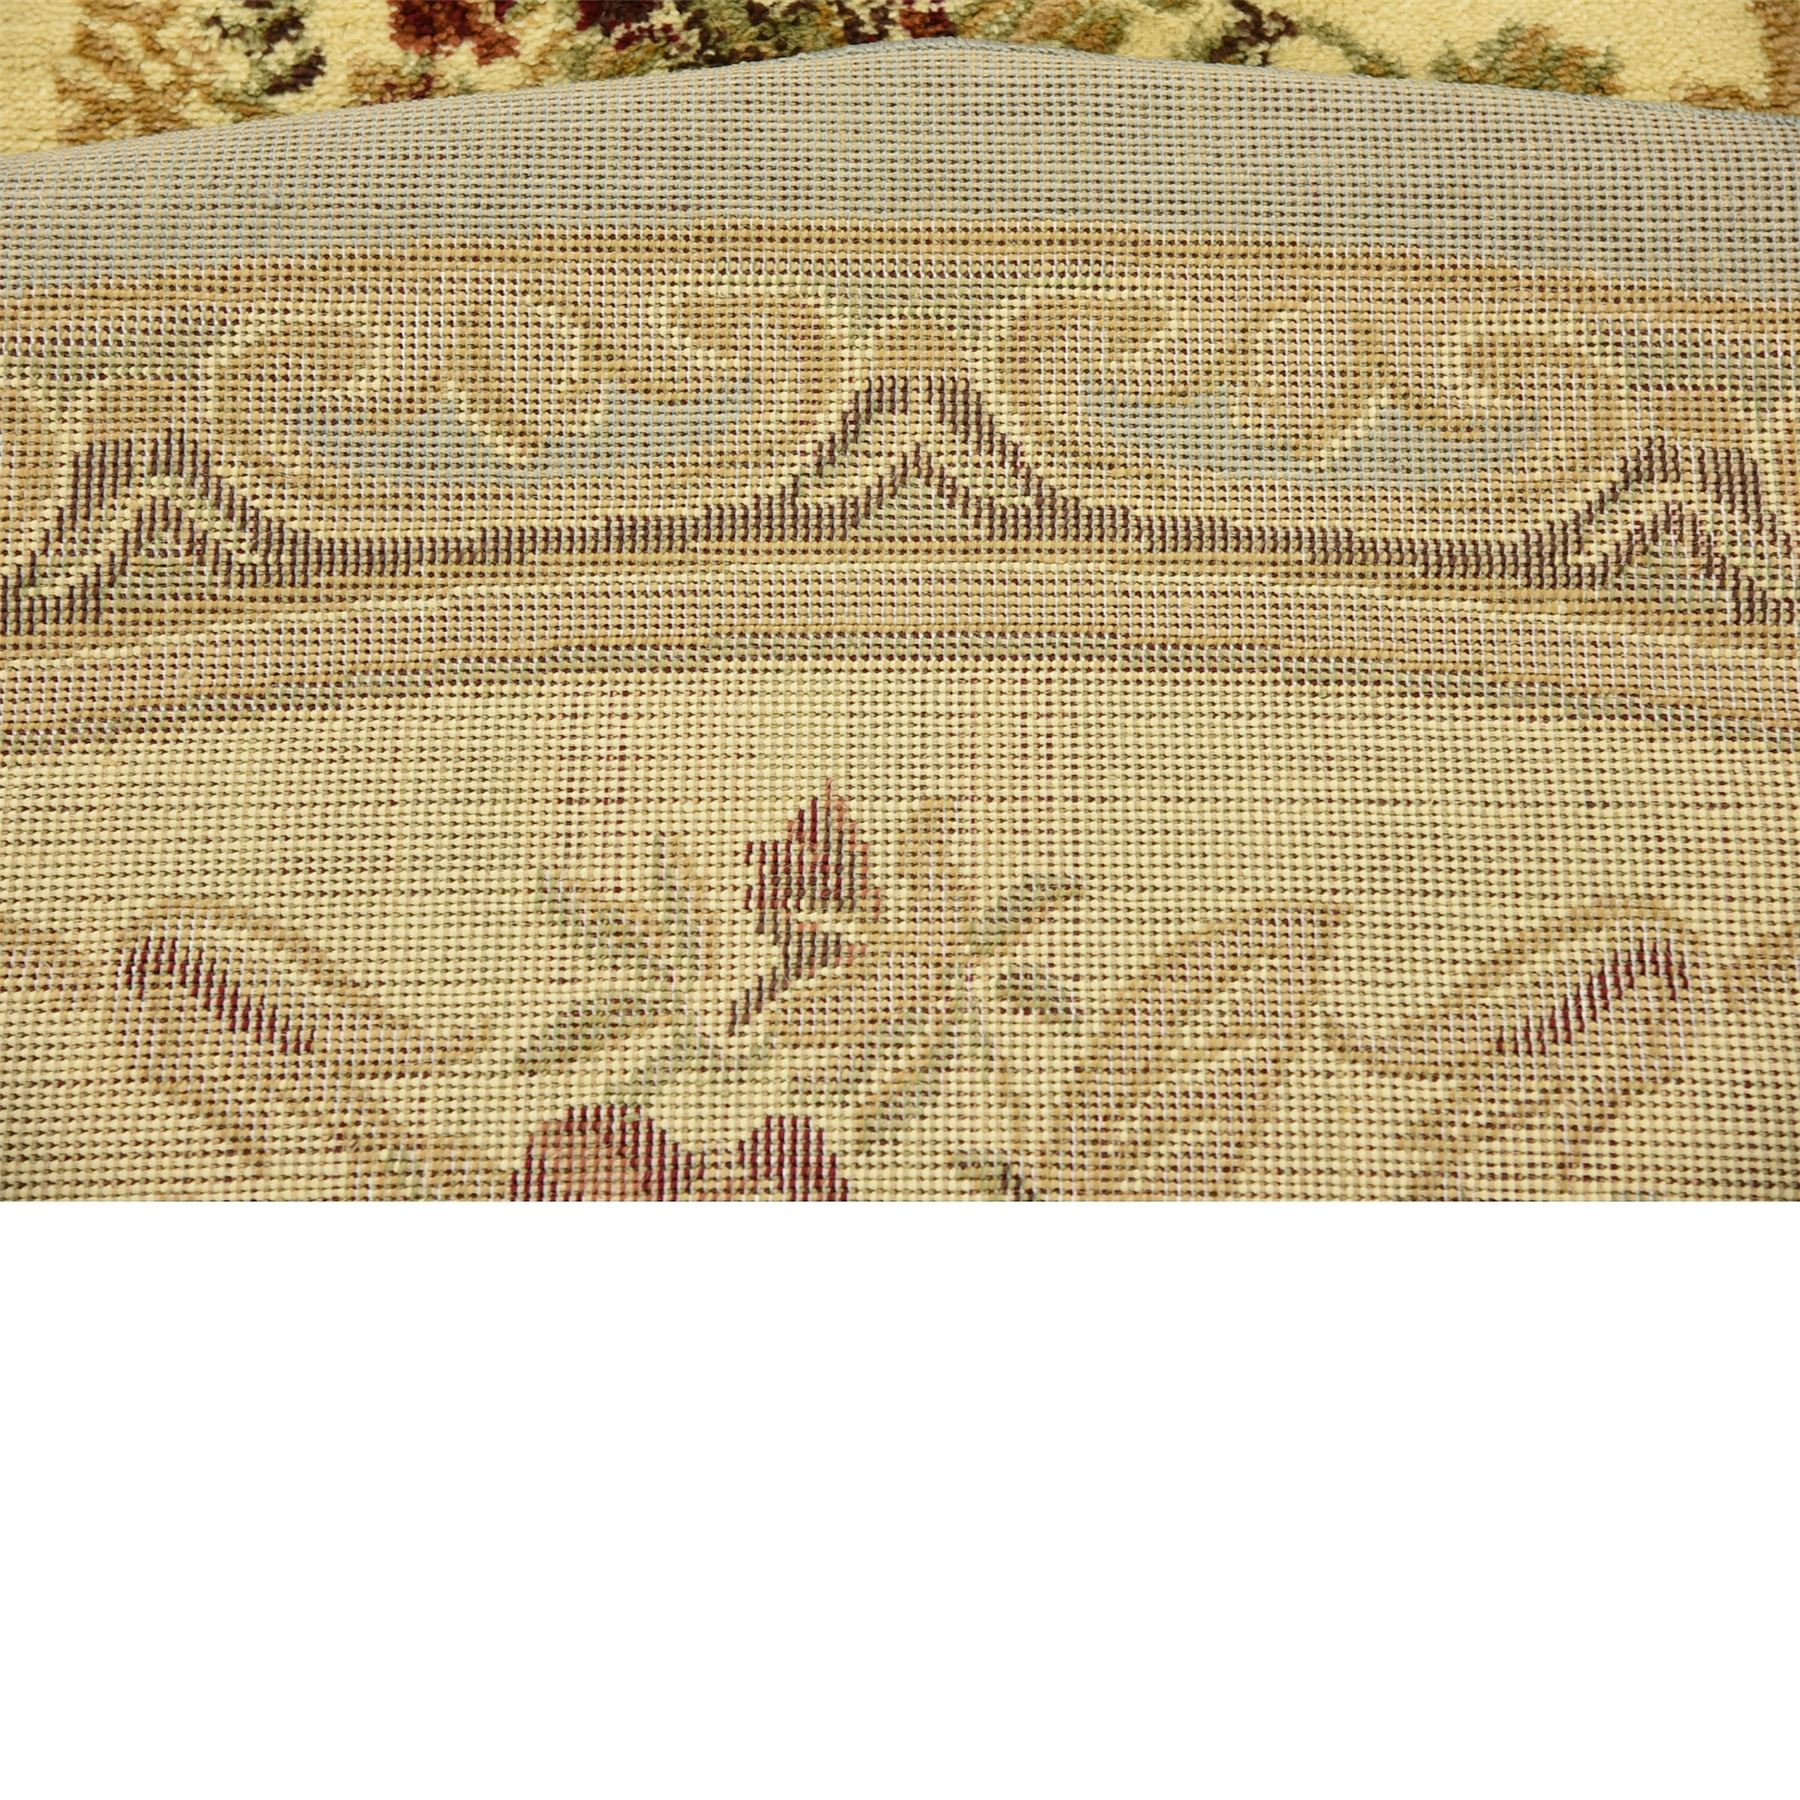 Oriental-Large-Area-Rug-Square-Traditional-Country-Round-Carpet-Medallion-Small thumbnail 39